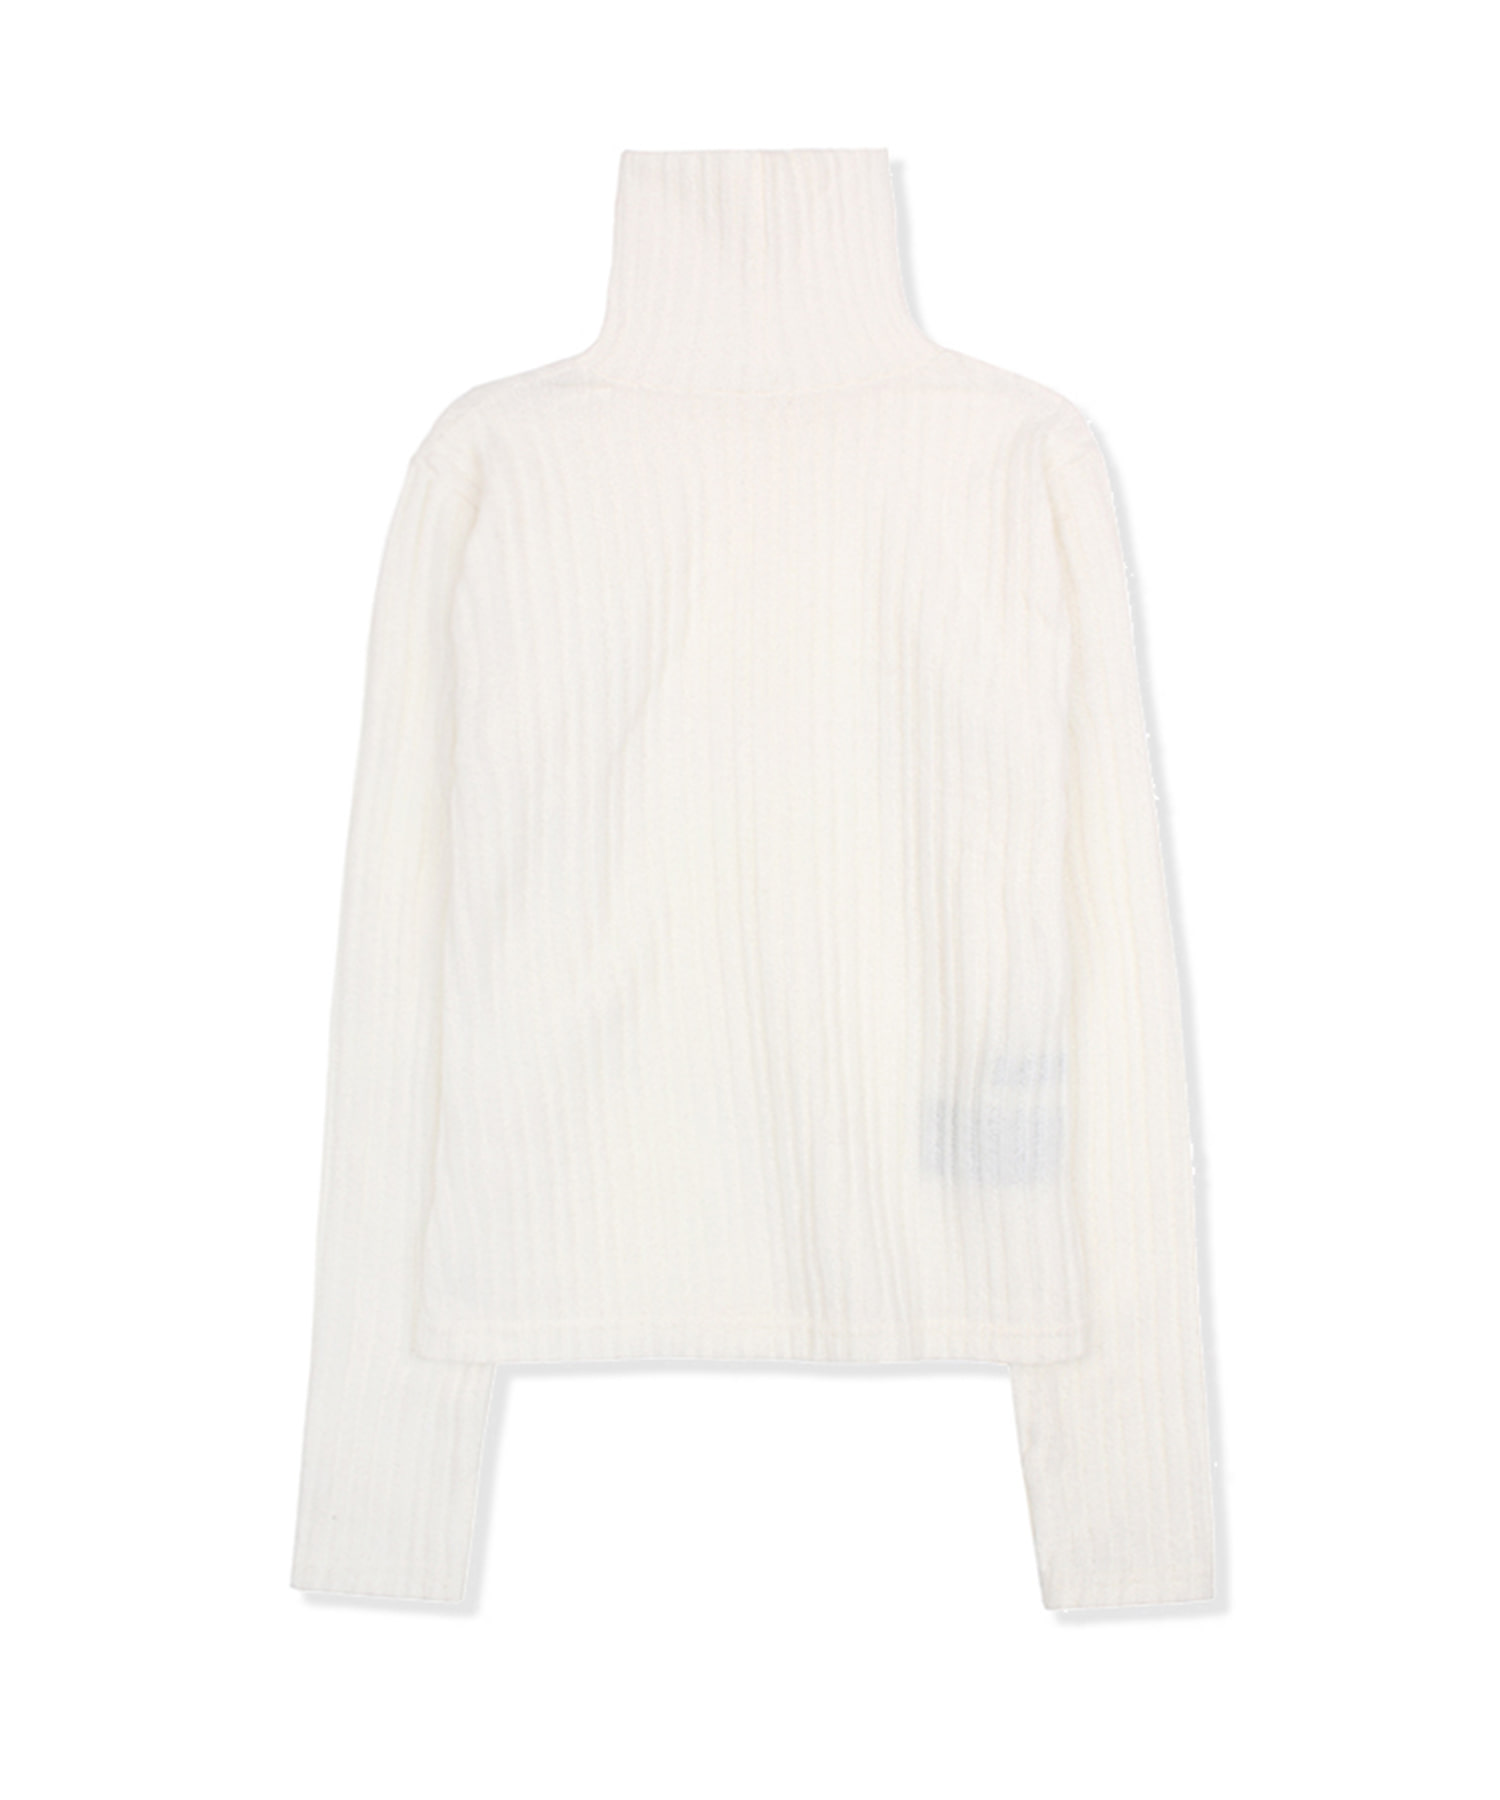 DWS LONG SLEEVE TURTLE NECK(WOMEN)(WHITE)